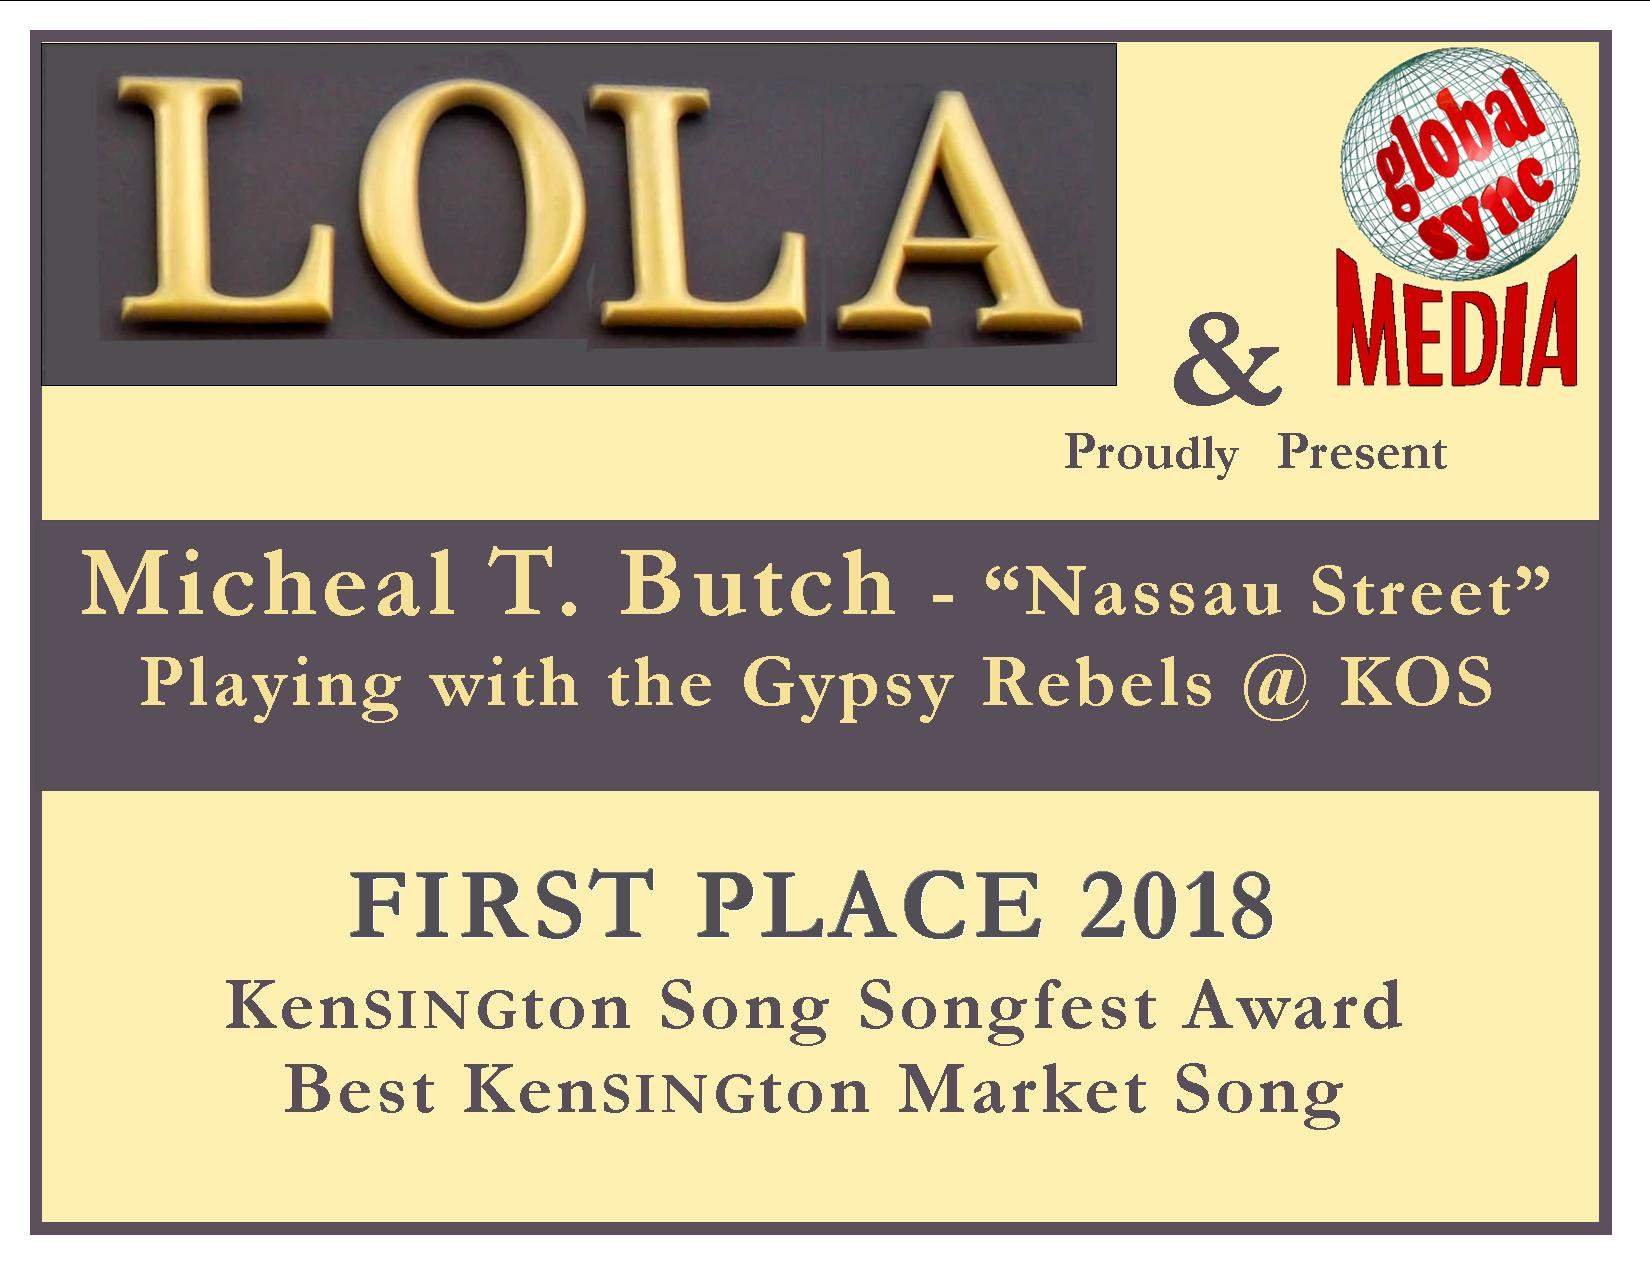 Kensington Song Songfest 2018 award